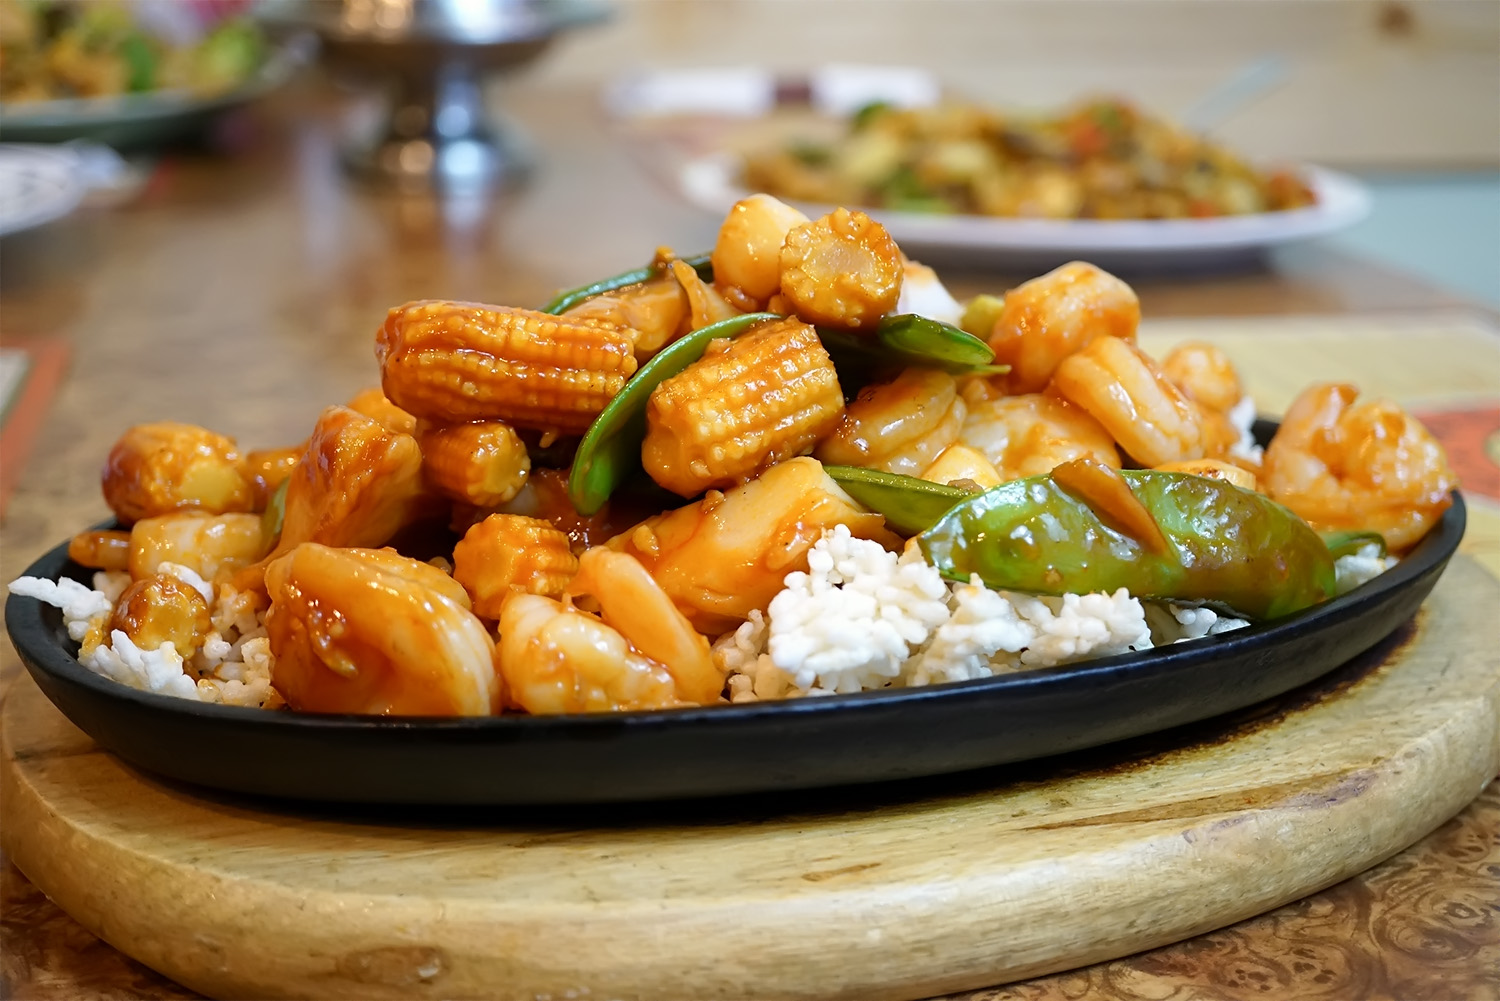 Seafood with Sizzling Rice Image